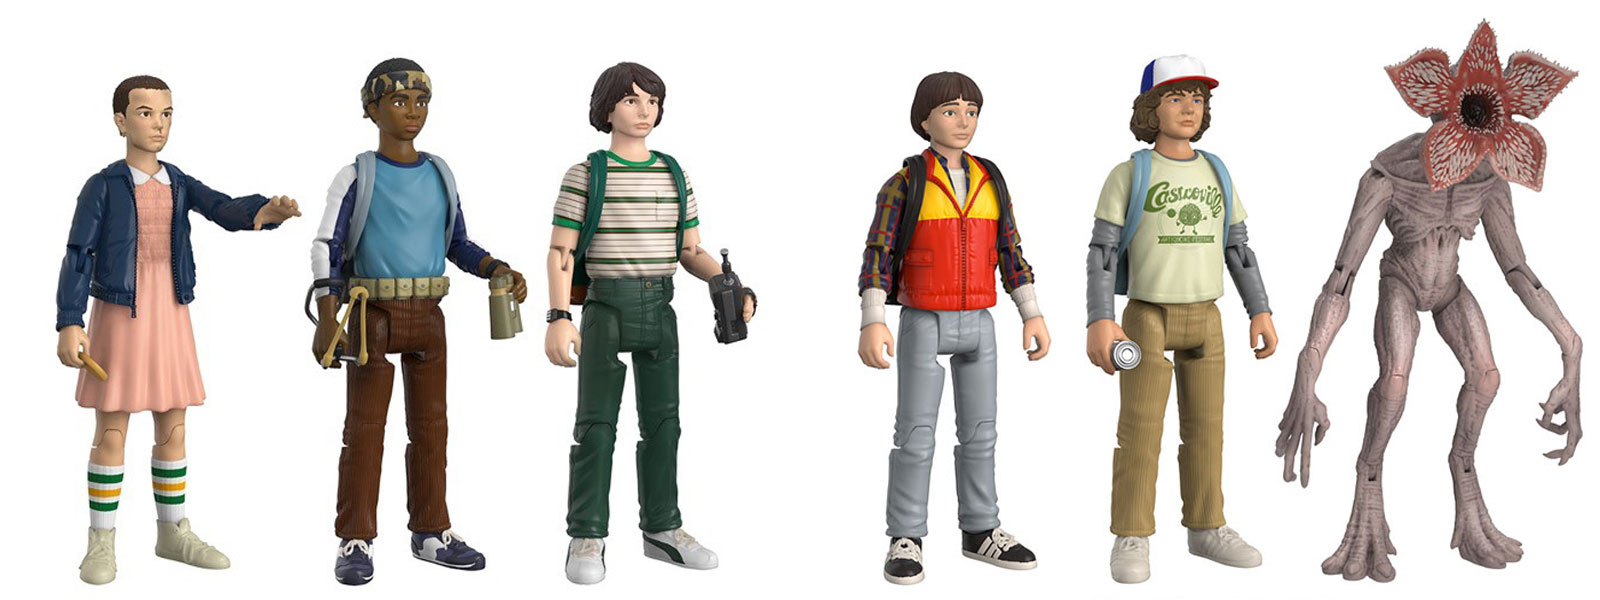 stranger-things-action-figures-funko.jpg